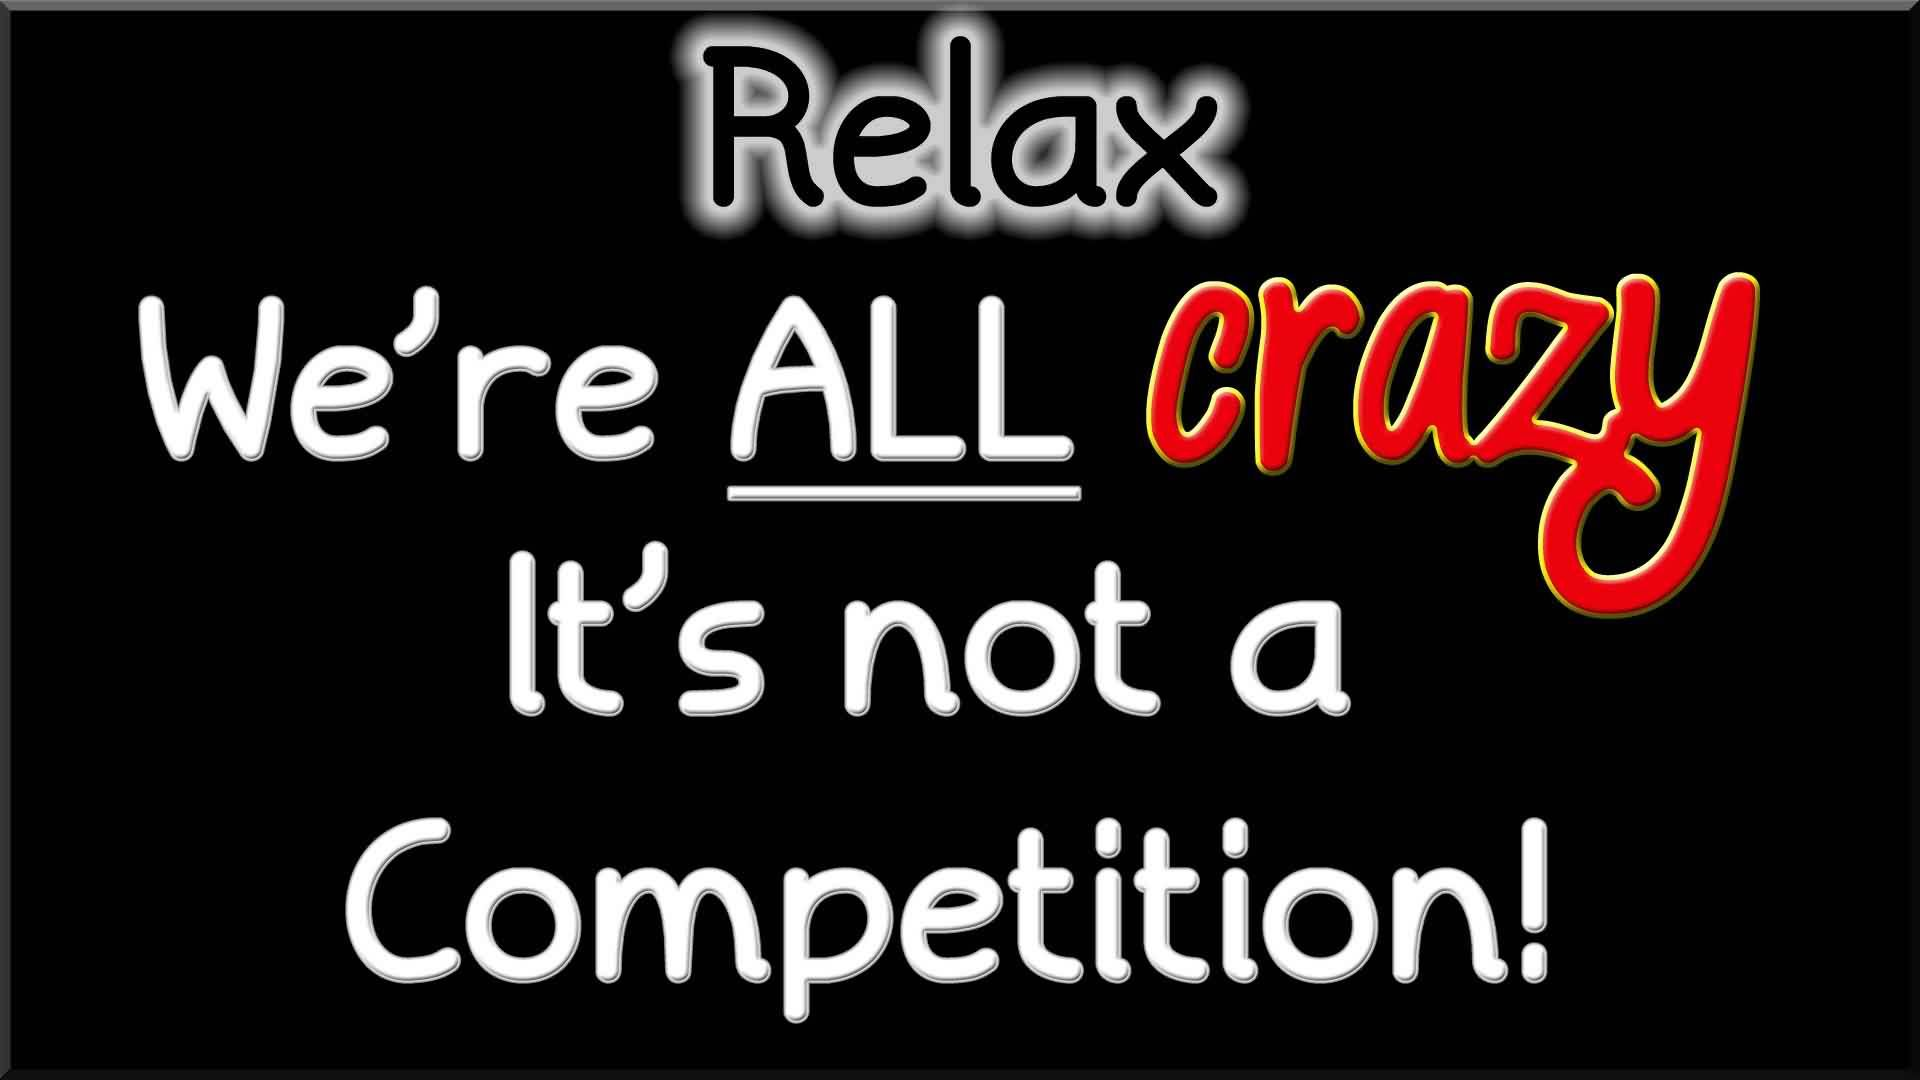 Short New Funny Facebook Quotes Images We Are All Crazy It S Not A Competition Quotespi Funny Quotes Wallpaper Funny Quotes For Whatsapp Weird Quotes Funny